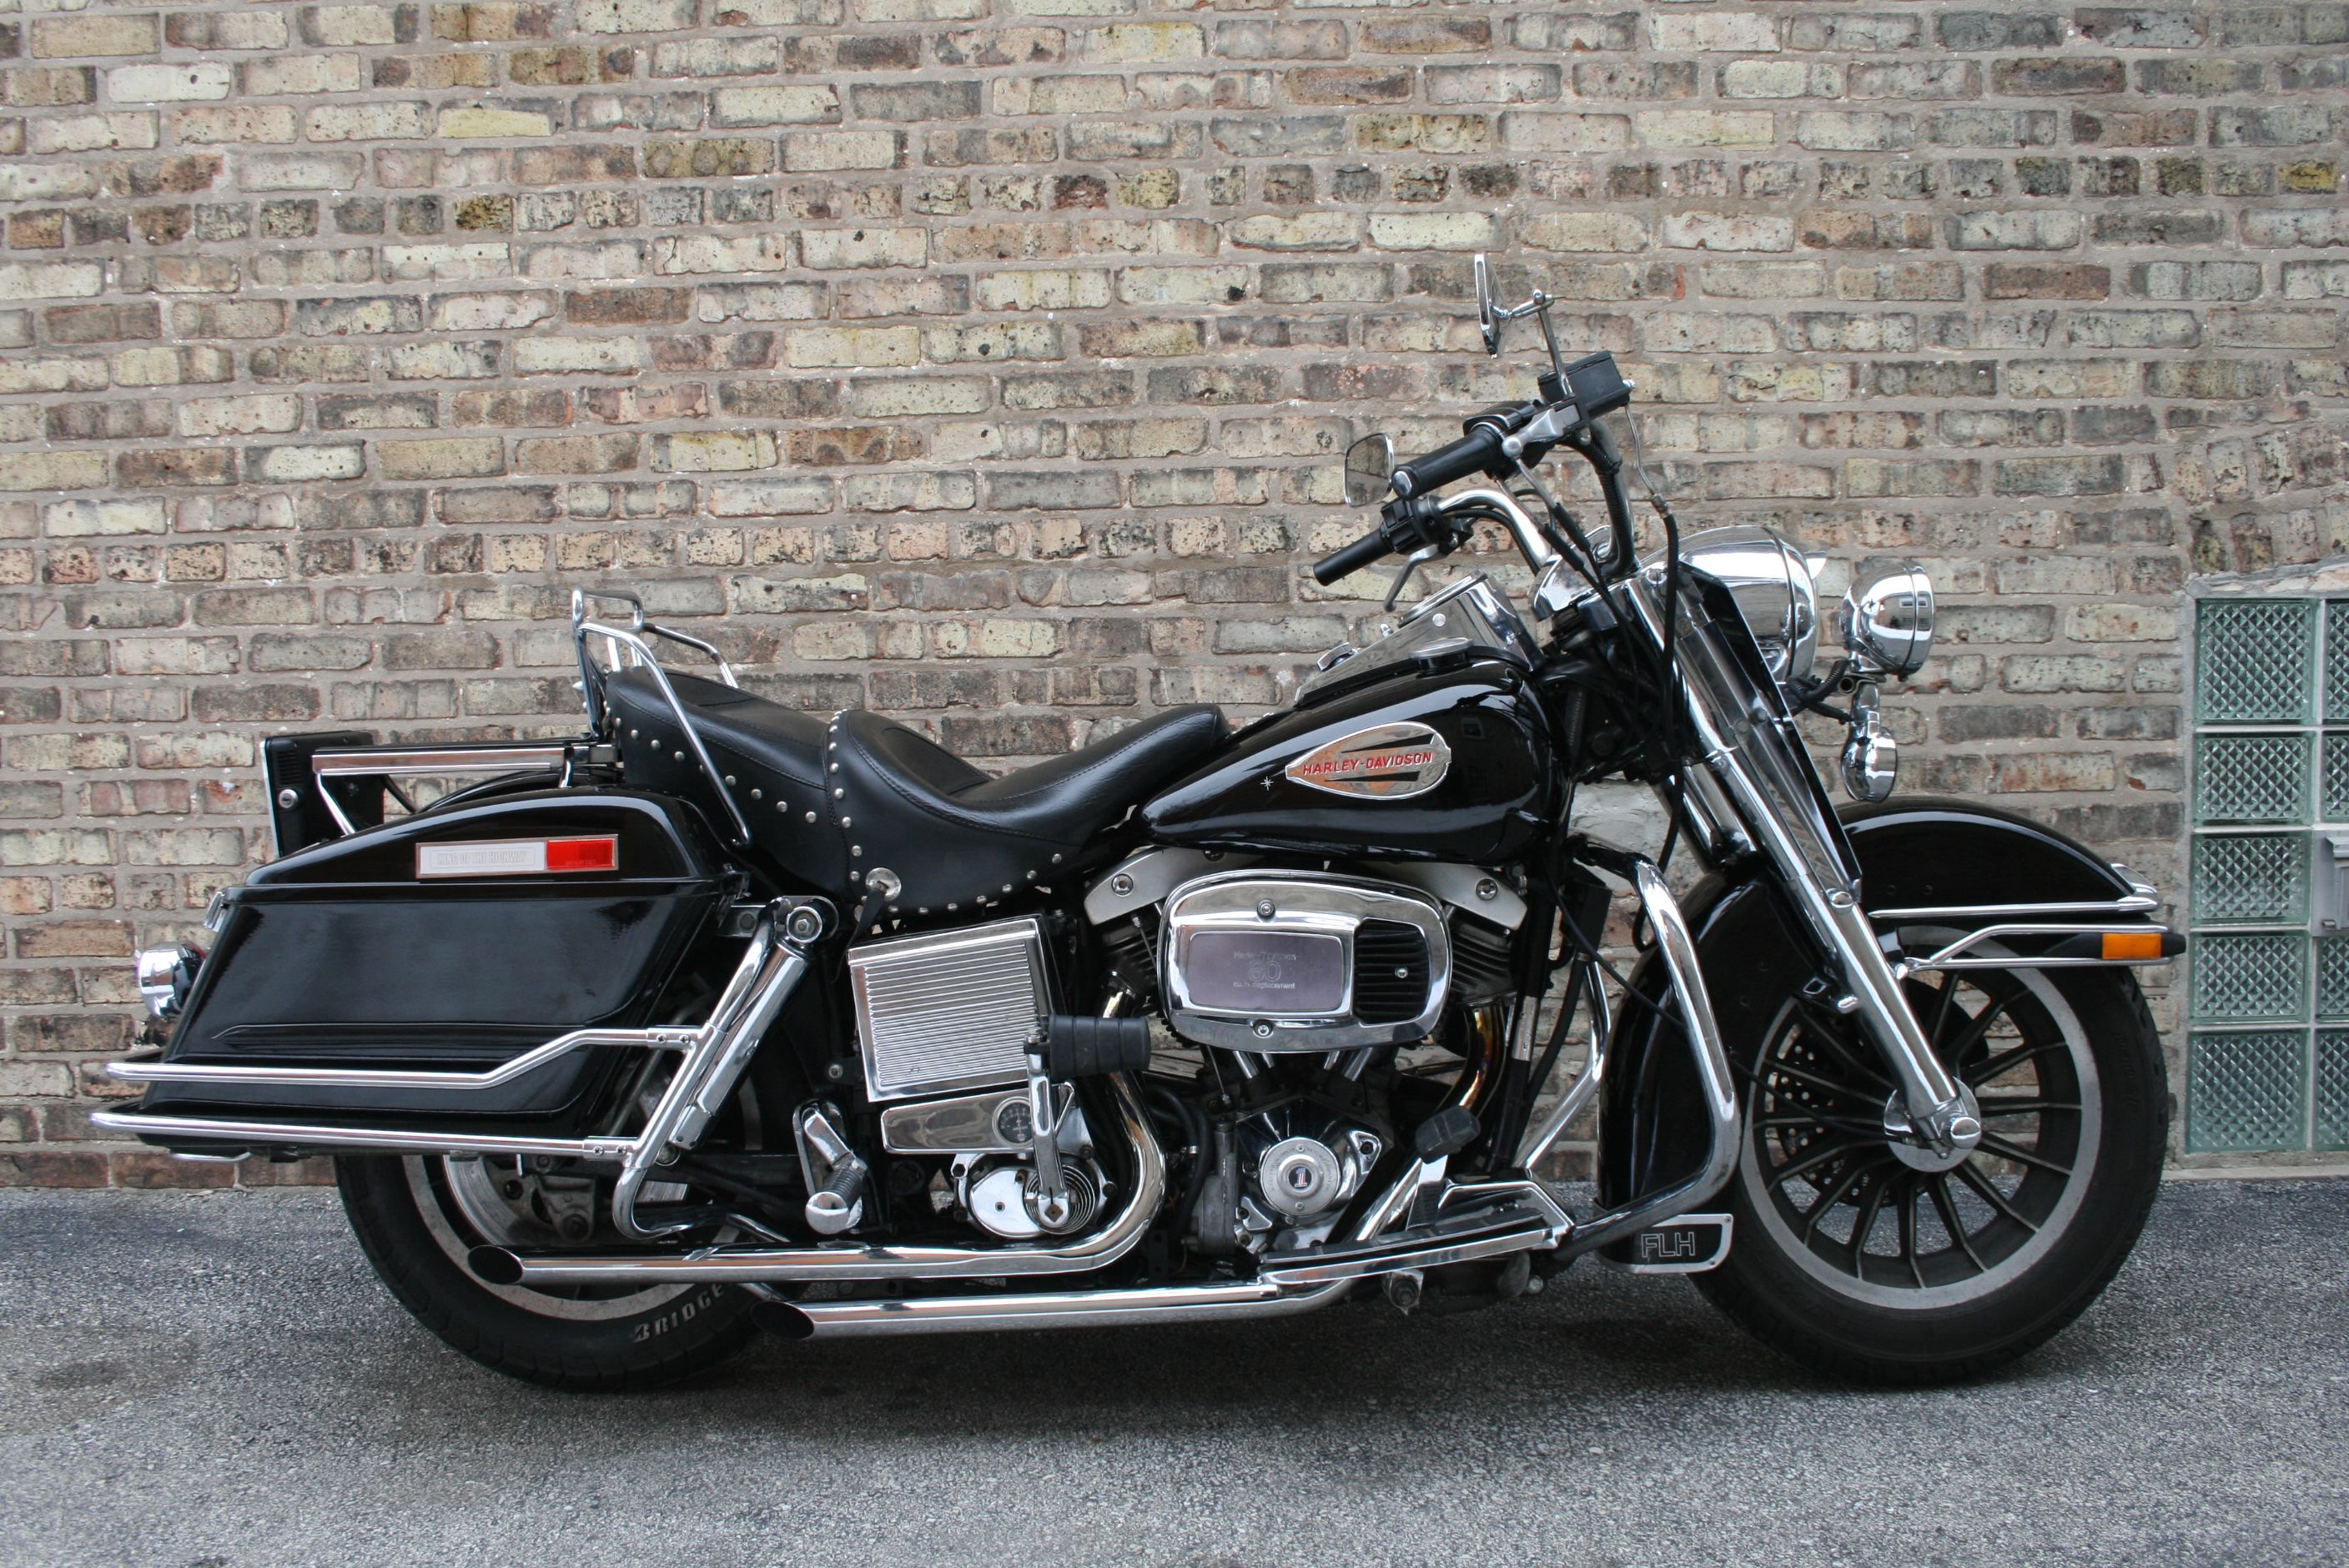 1982 Harley-Davidson FLH 1340 Electra Glide: pics, specs and ...